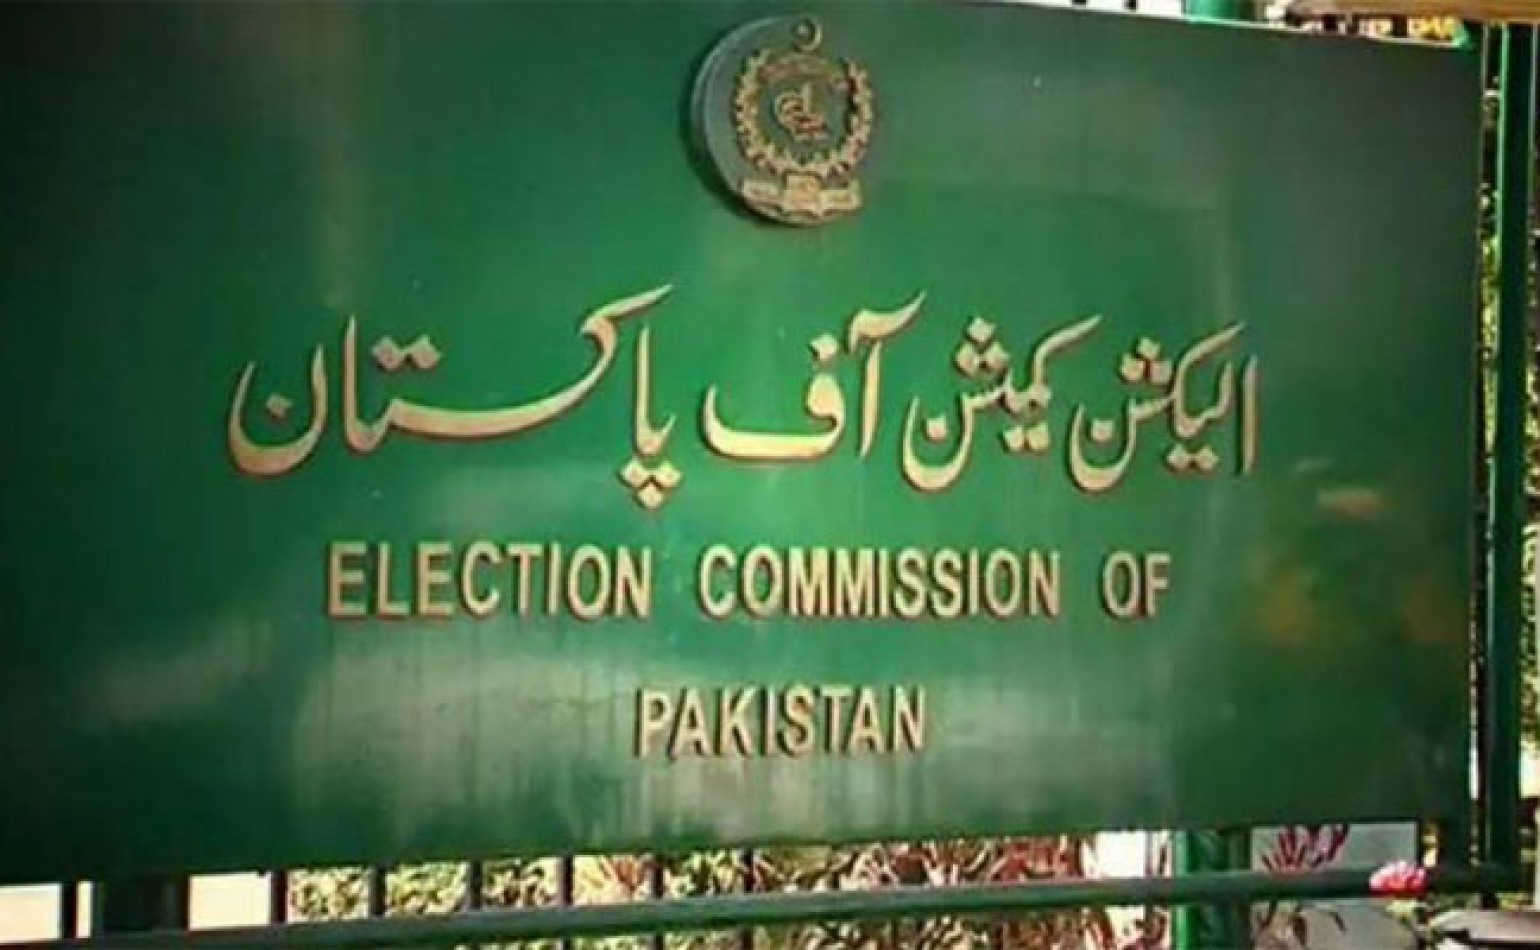 Media Matters for Democracy writes a letter to the Election Commission of Pakistan to curb the spread of election related online misinformation; ensure implementation of CoC for political parties in online spaces